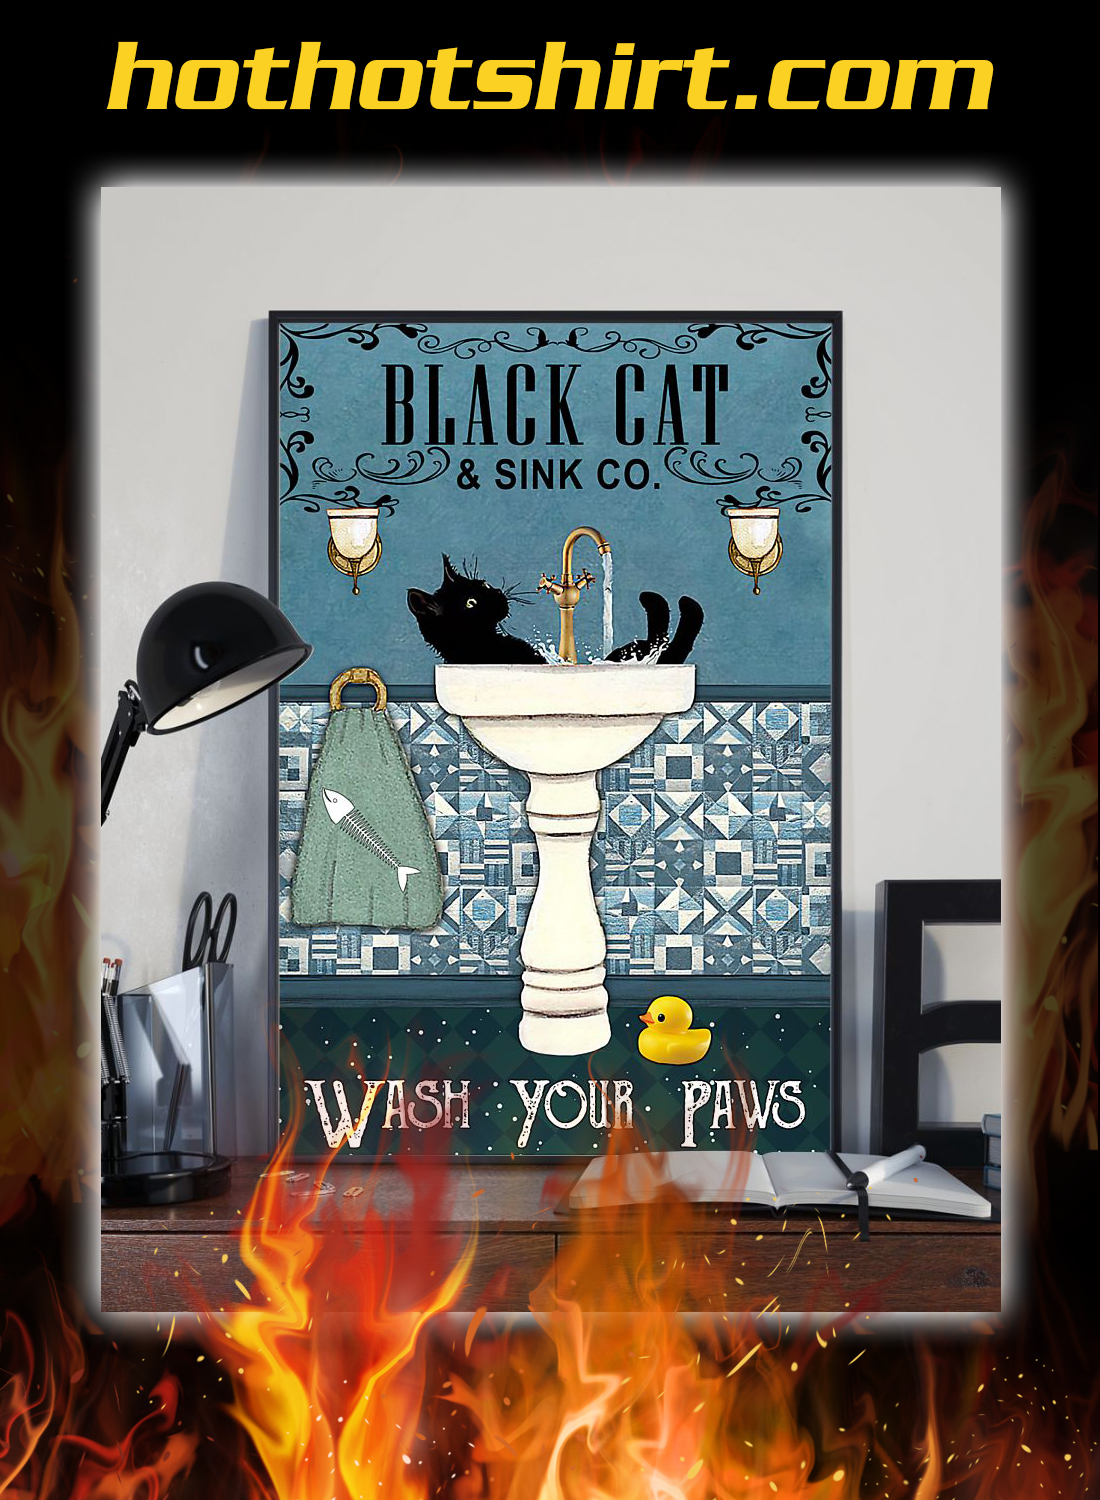 Black cat and sink co wash your paws poster 1